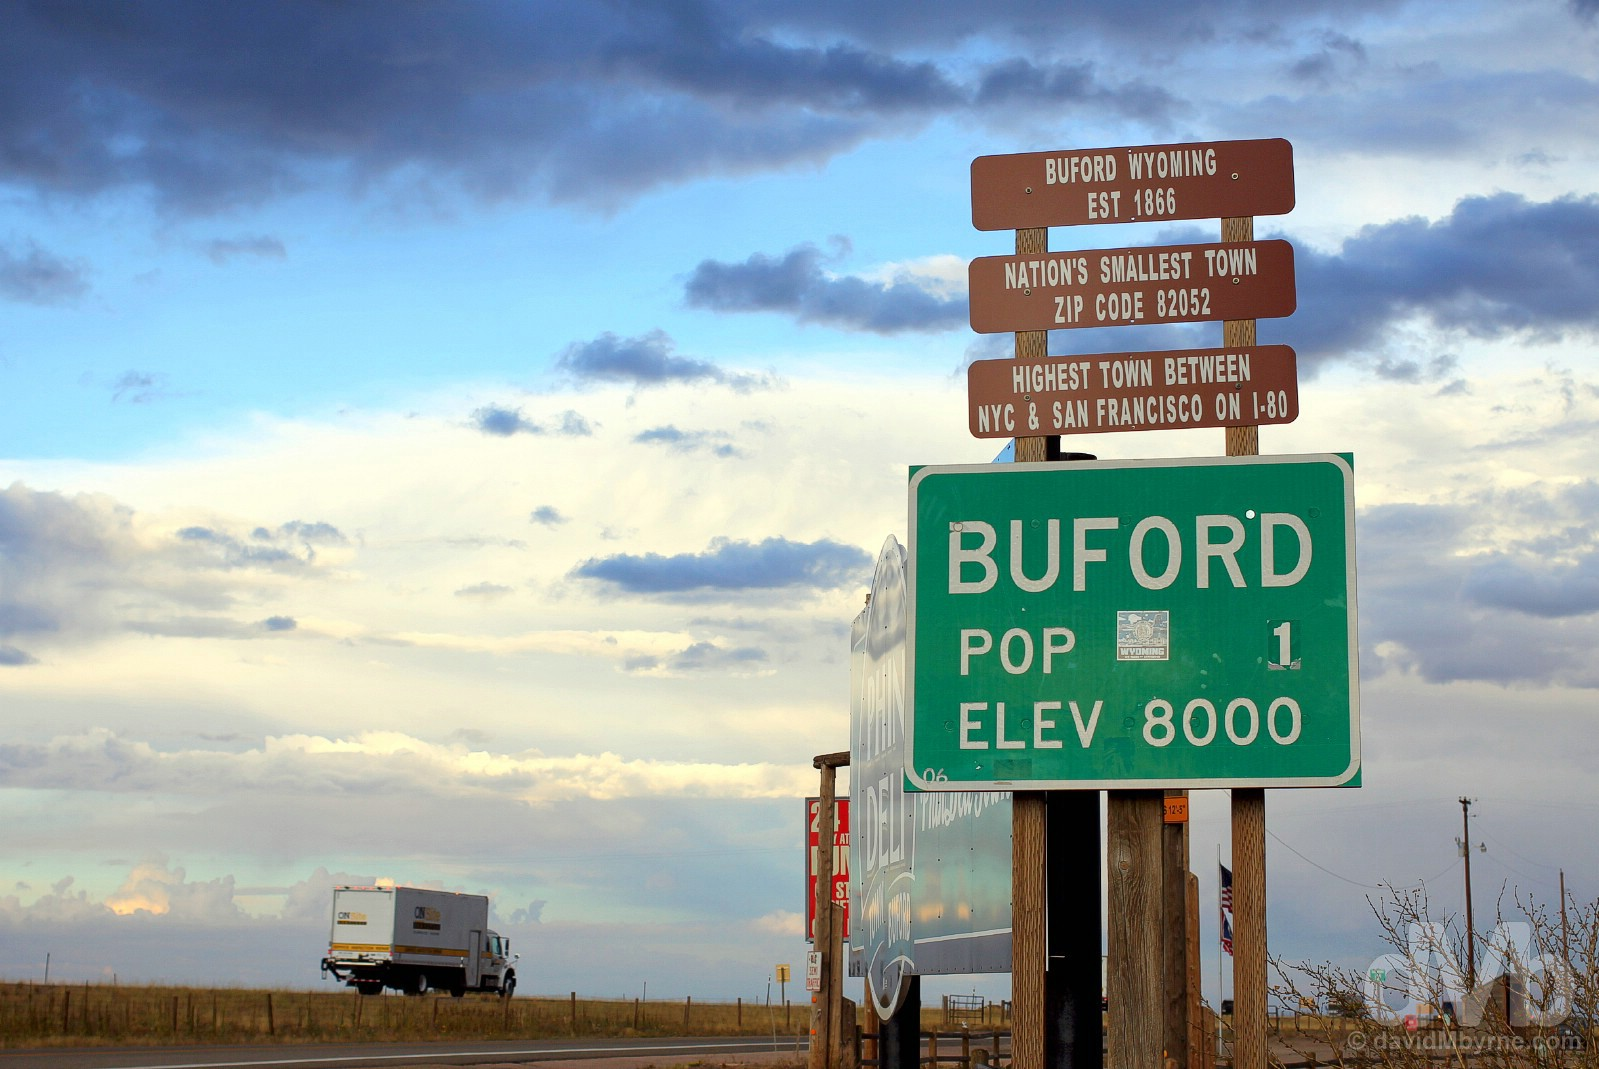 Buford, off Interstate 80, southern Wyoming, USA. September 14, 2016.